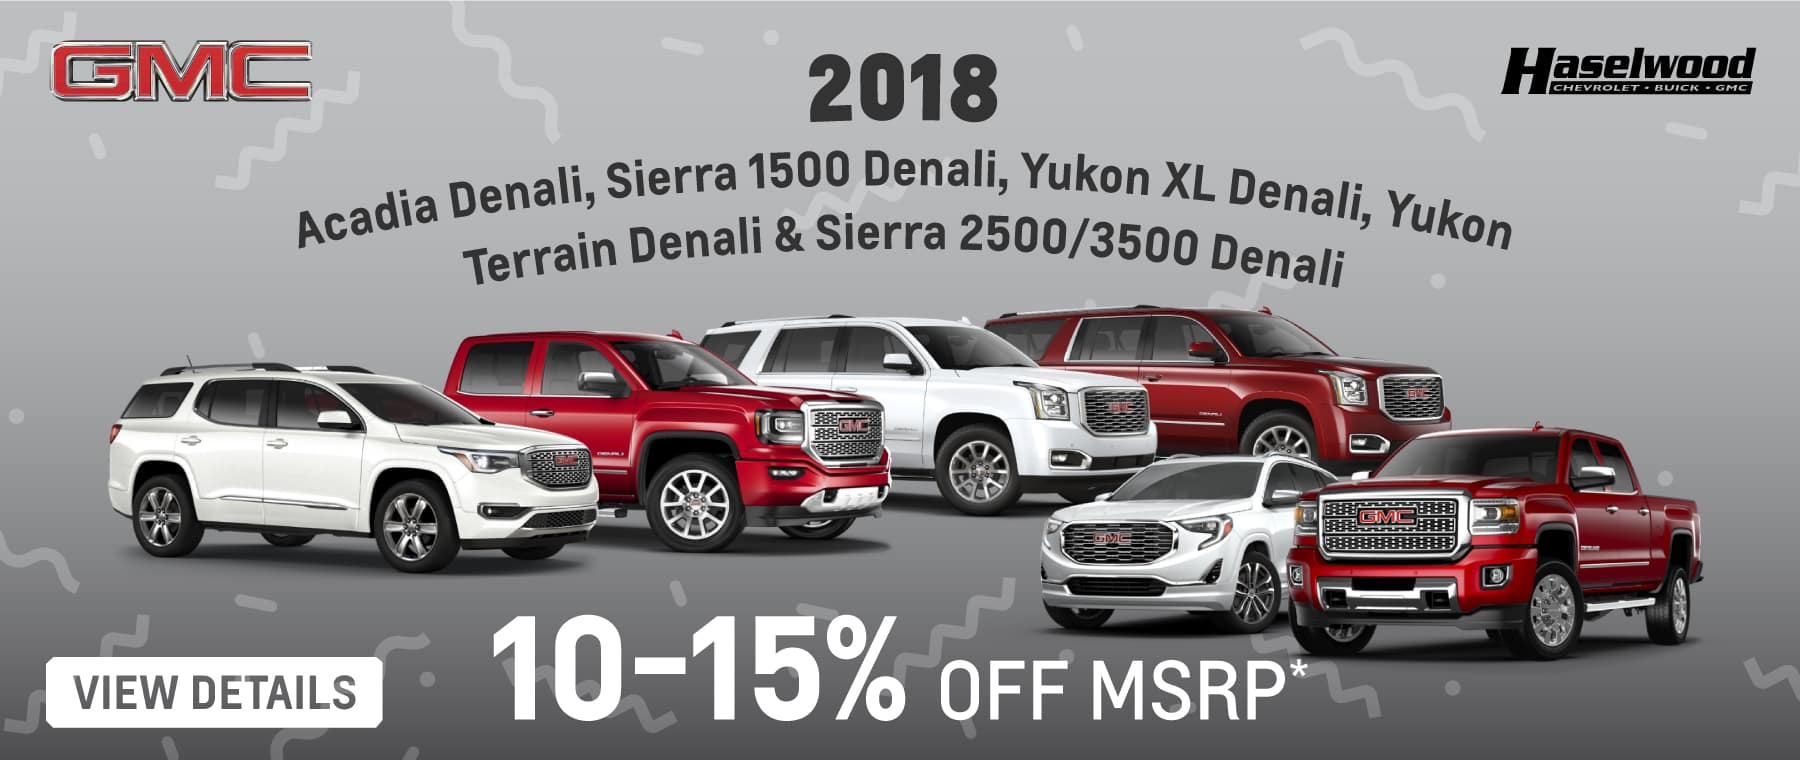 14% Below MSRP on all Silverado 1500 Pickups when you finance with GM Financial* OR 10% Below MSRP on all Silverado 2500HD & 3500HD Pickups when you finance with GM Financial* PLUS 90 Days to first payment when you finance with GM Financial**